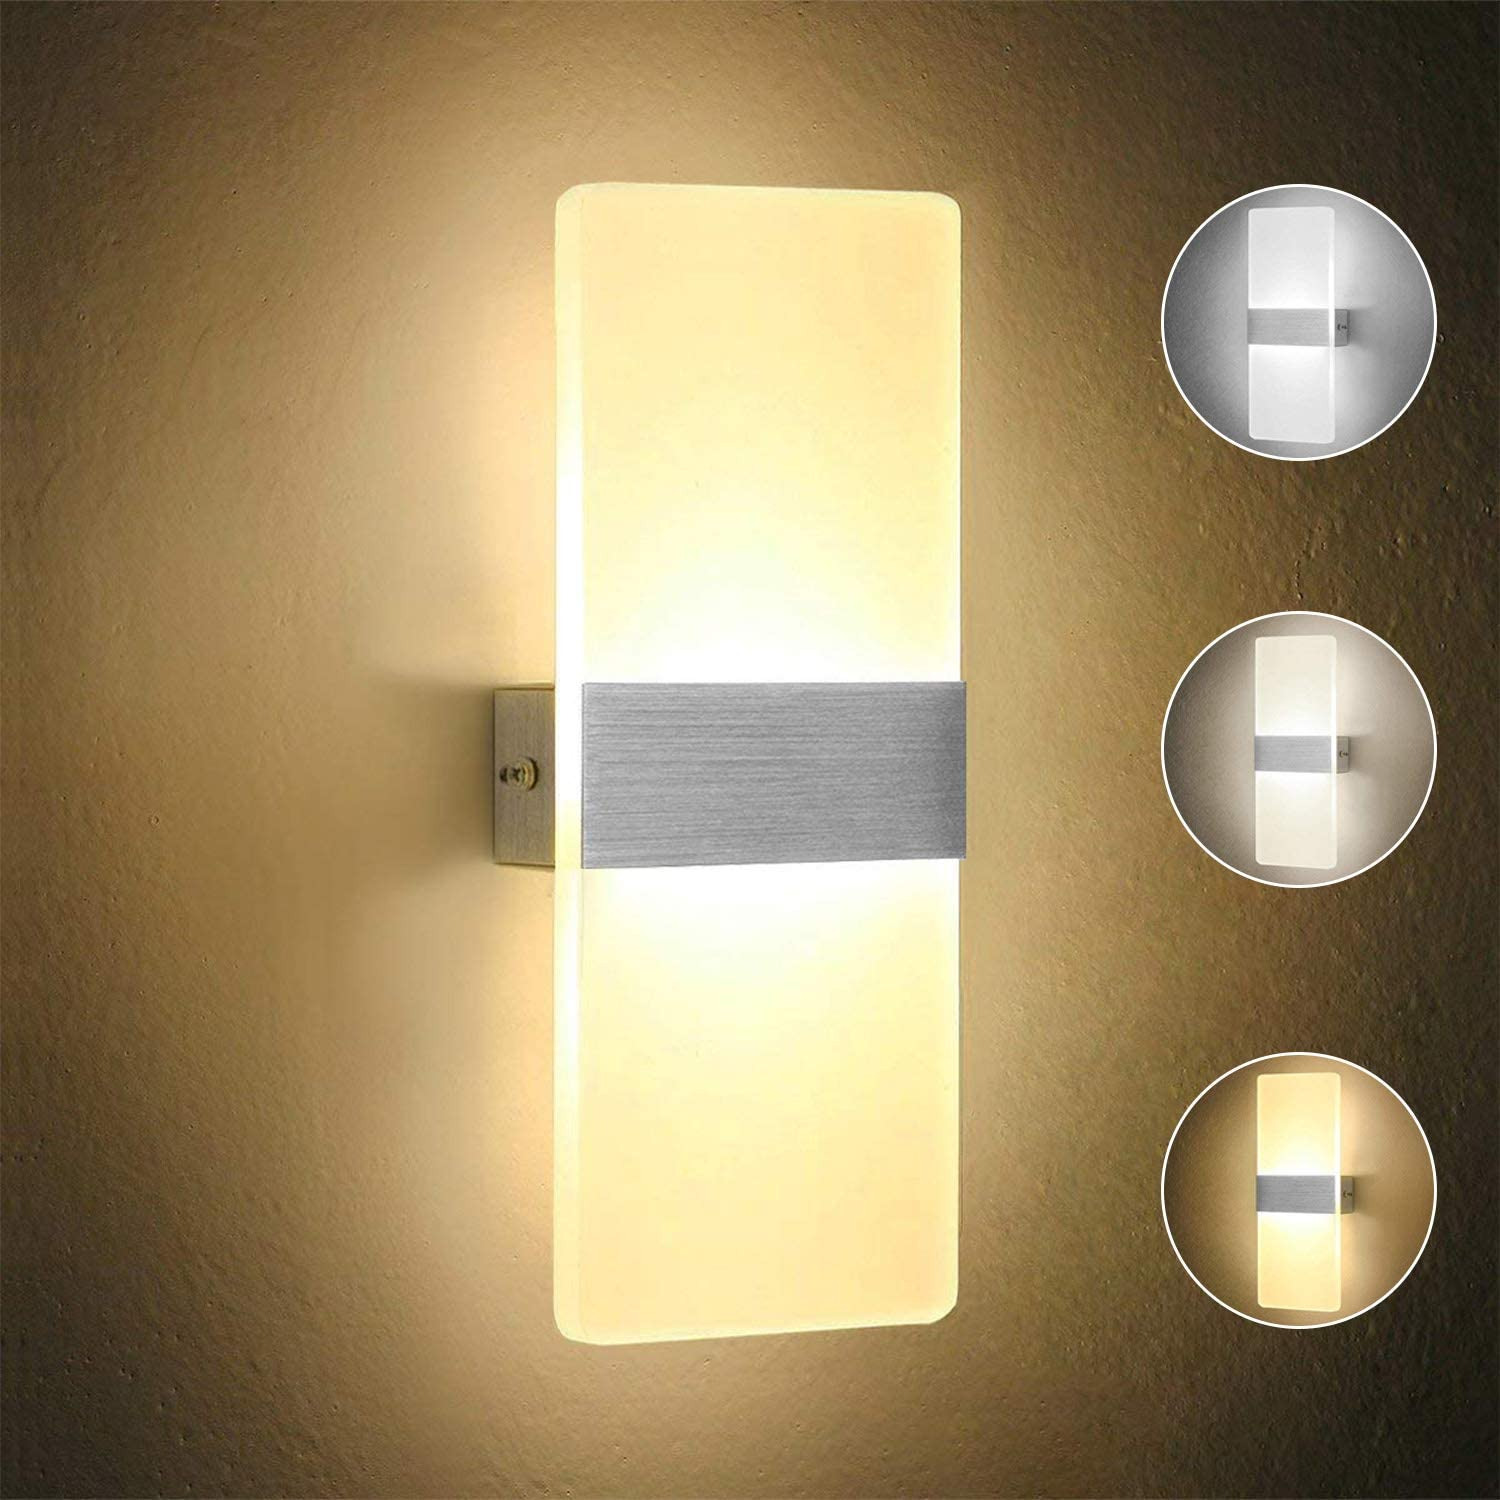 LED Wall Light 6W Cool White Modern Acrylic Wall Lamp Wall Sconce Lights Night Lights Perfect for Living Room Bedroom Corridor Stairs Indoor Lighting